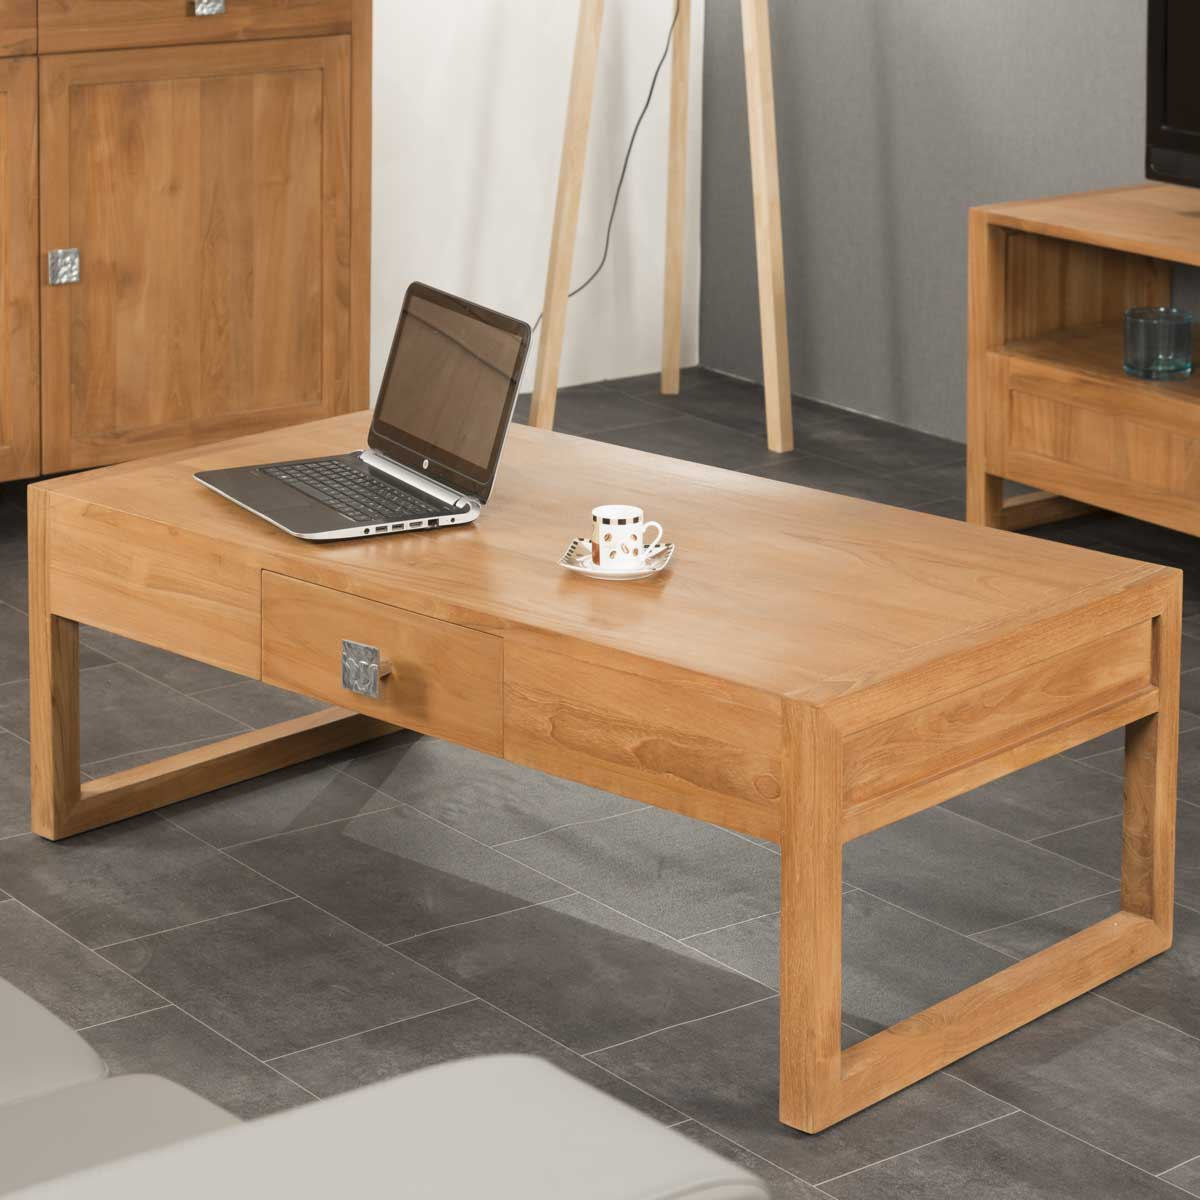 Table basse teck massif rectangle bois naturel th a - Table de salon en teck occasion ...